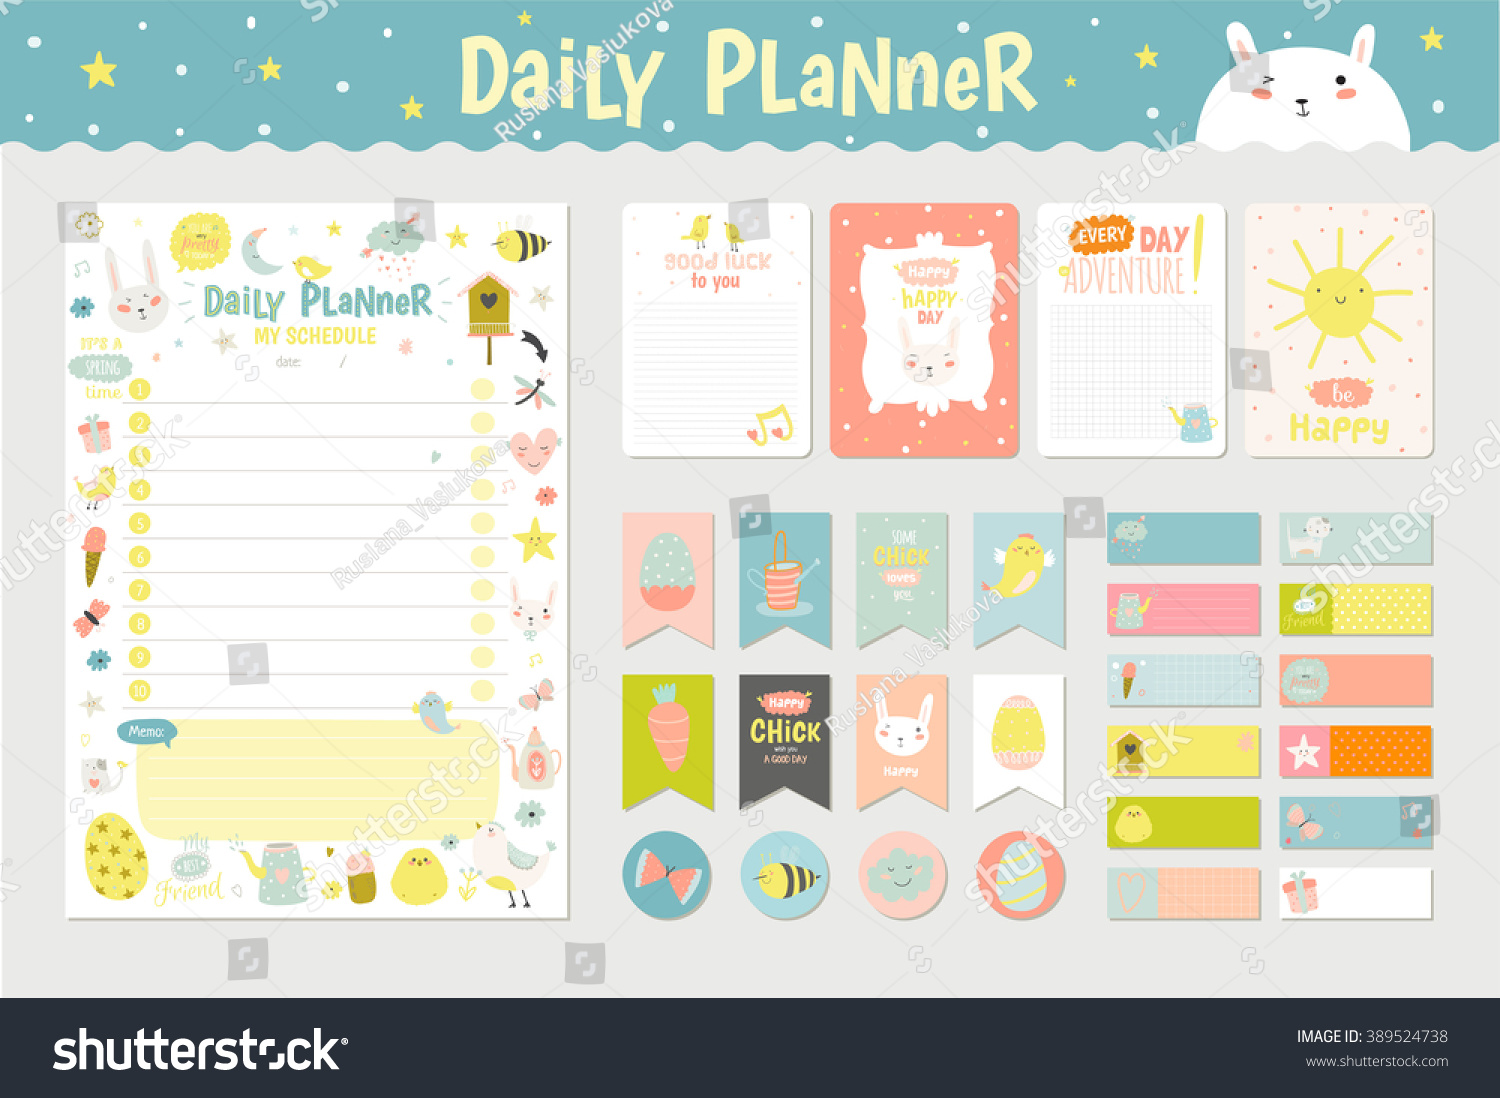 Cute calendar daily planner template 2016 stock vector for Weekly schedule template for kids